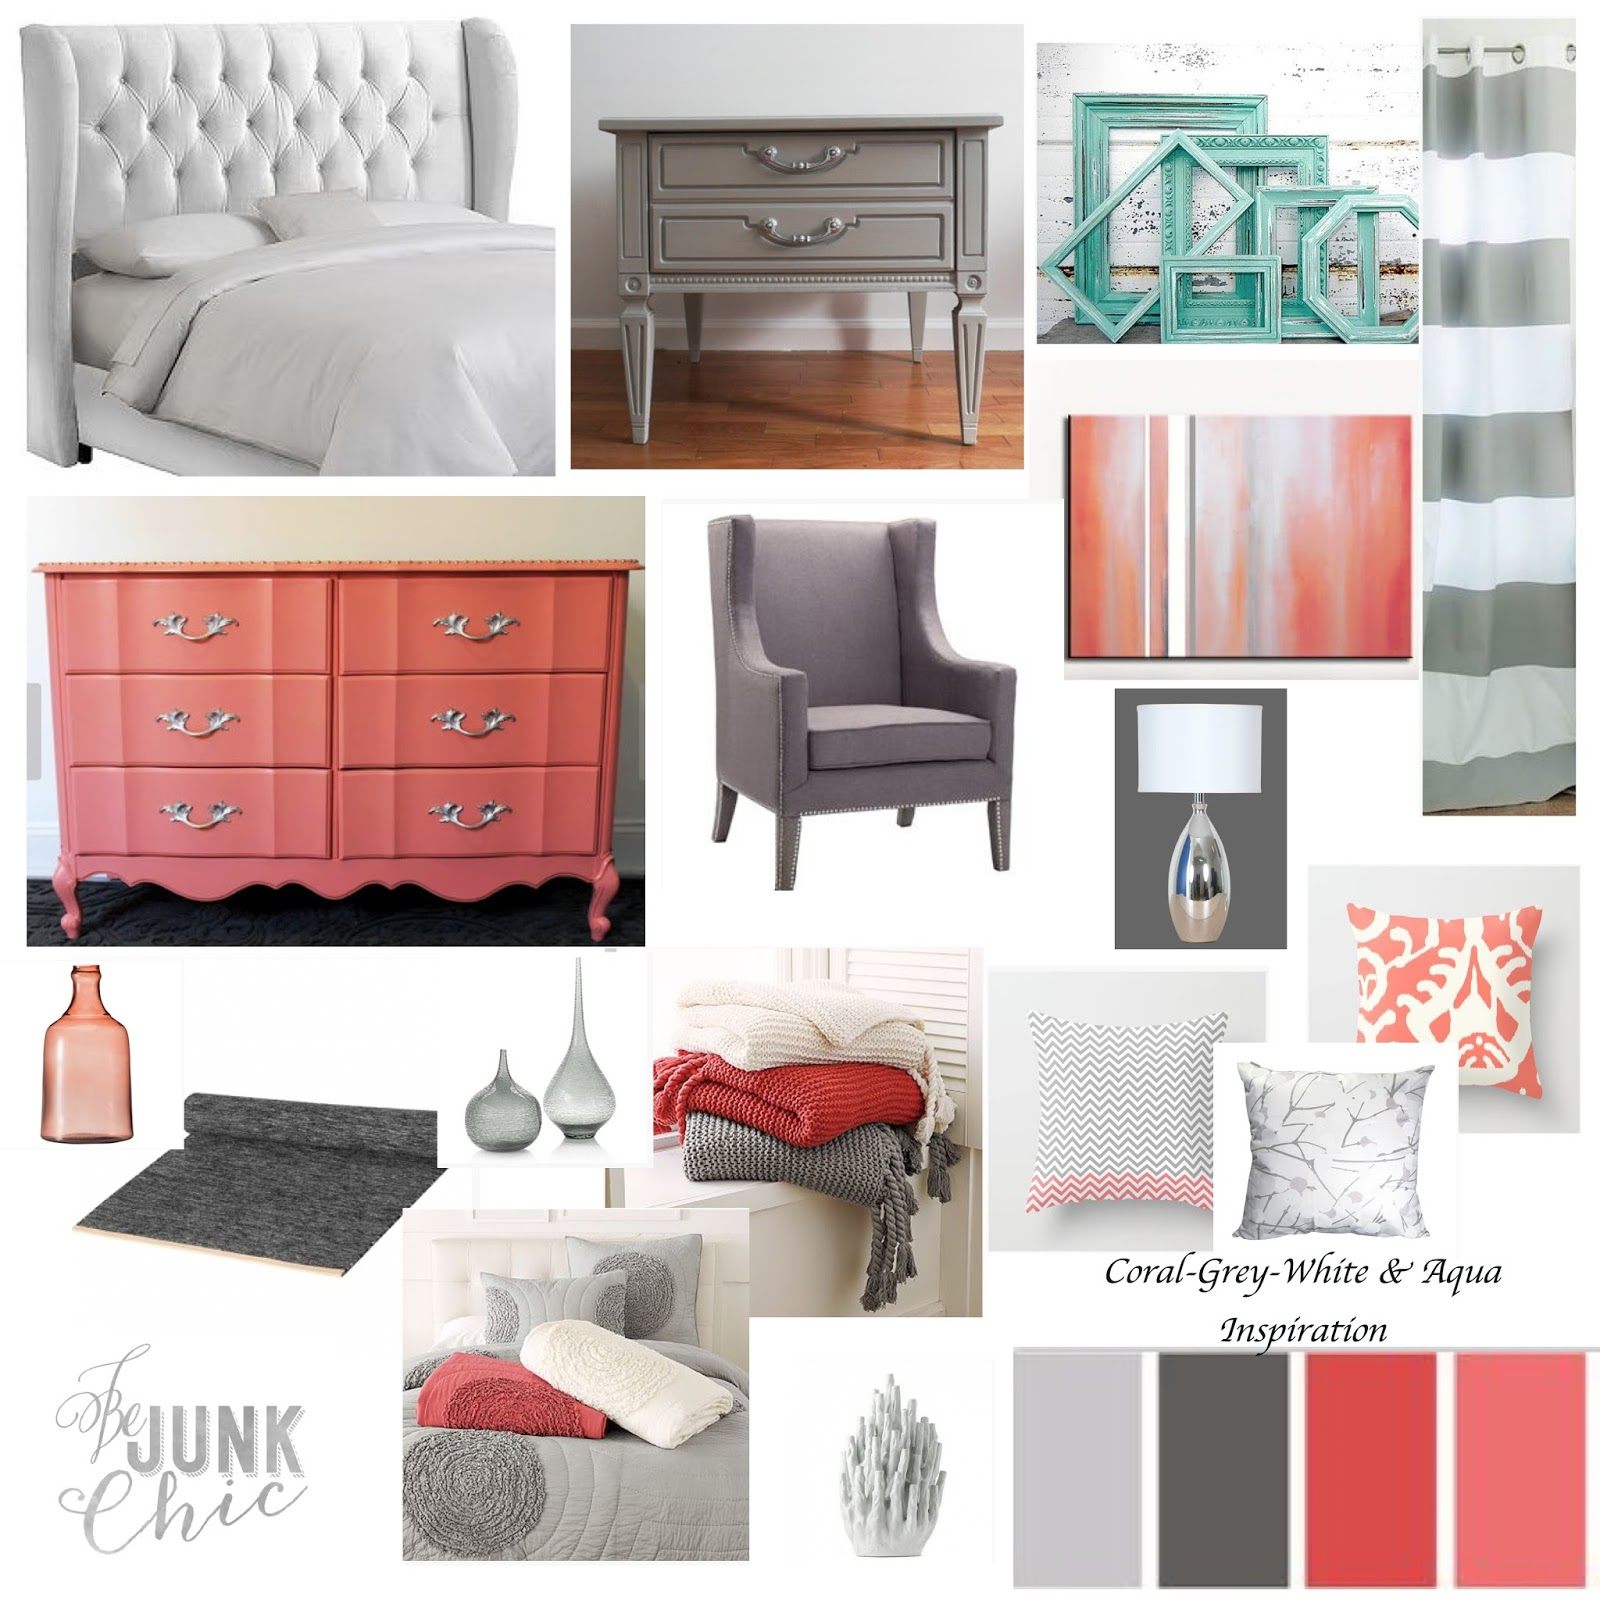 be junk chic Coral & Grey Bedroom Inspiration